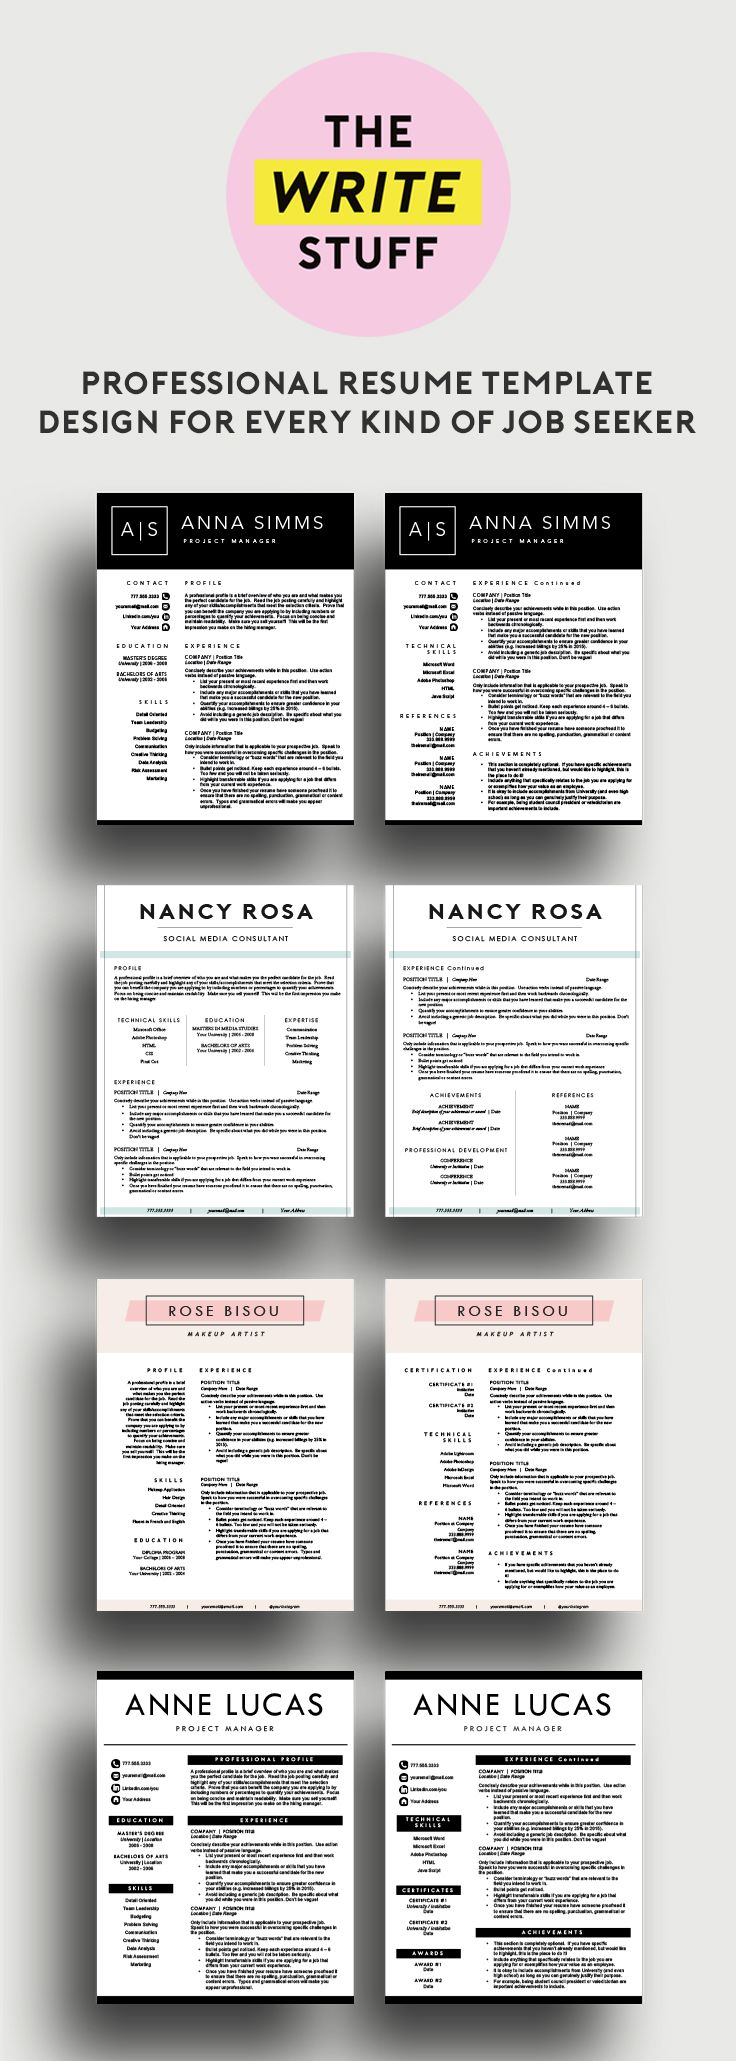 140 best Professional Resume Templates images on Pinterest ...